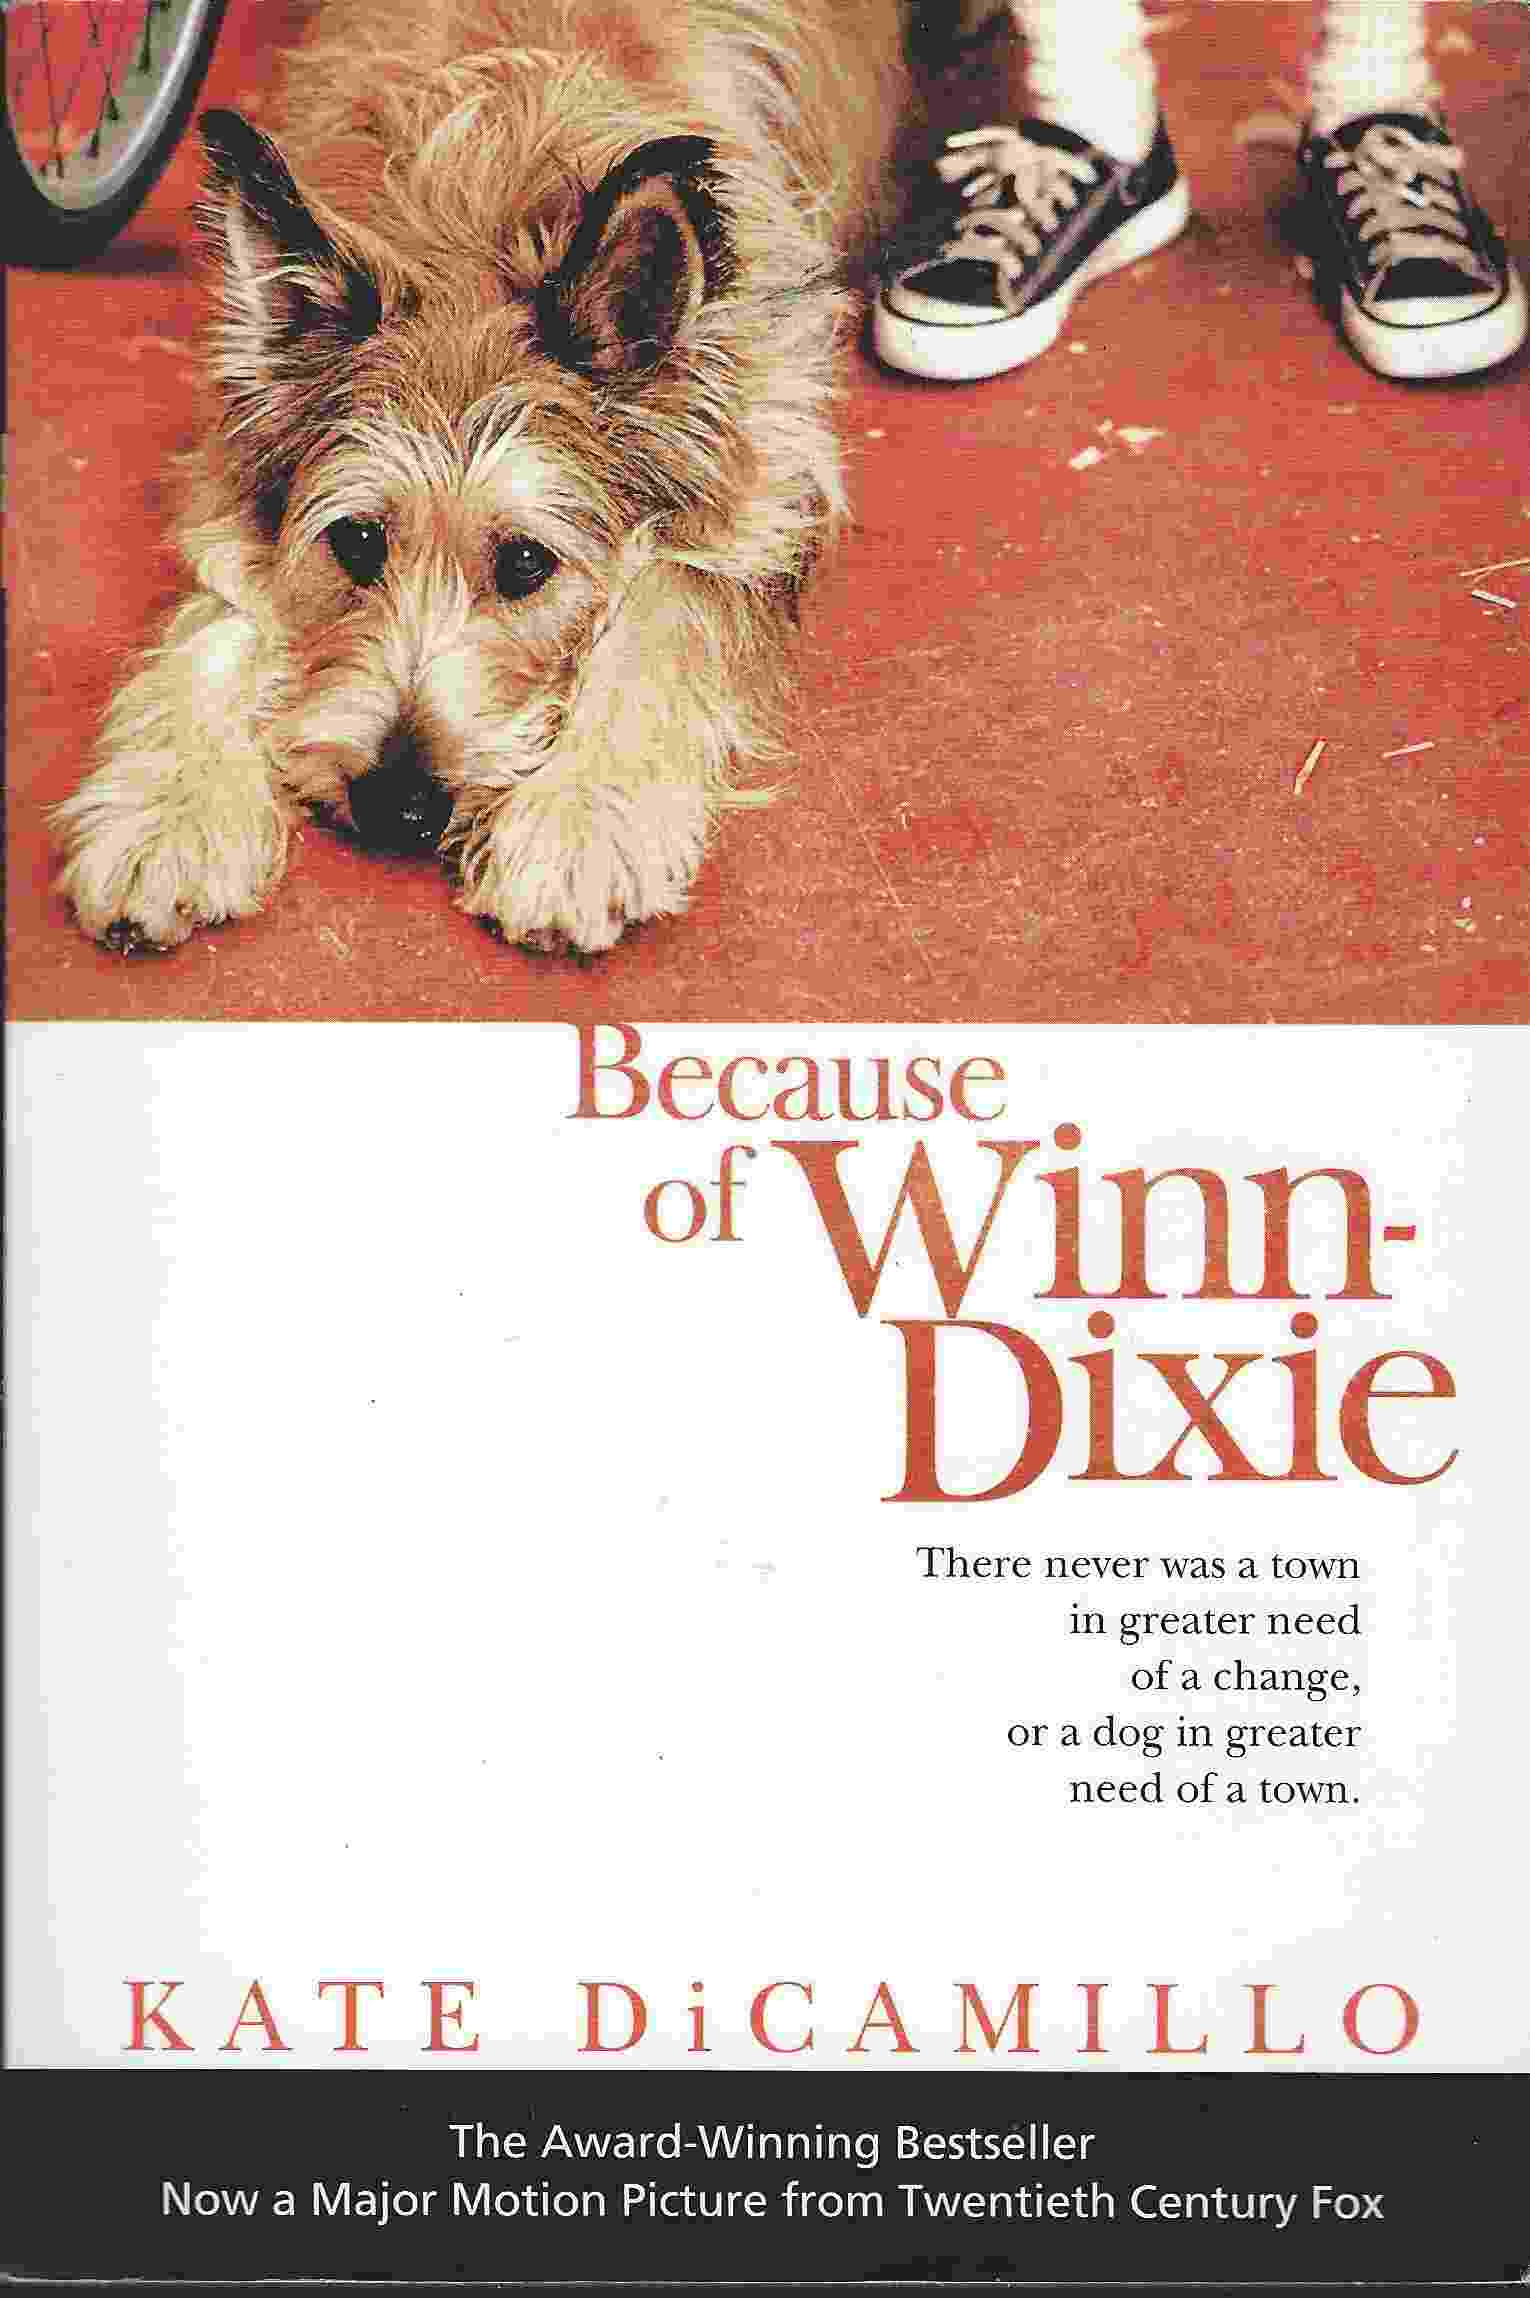 Image for BECAUSE OF WINN-DIXIE [MOVIE TIE-IN]